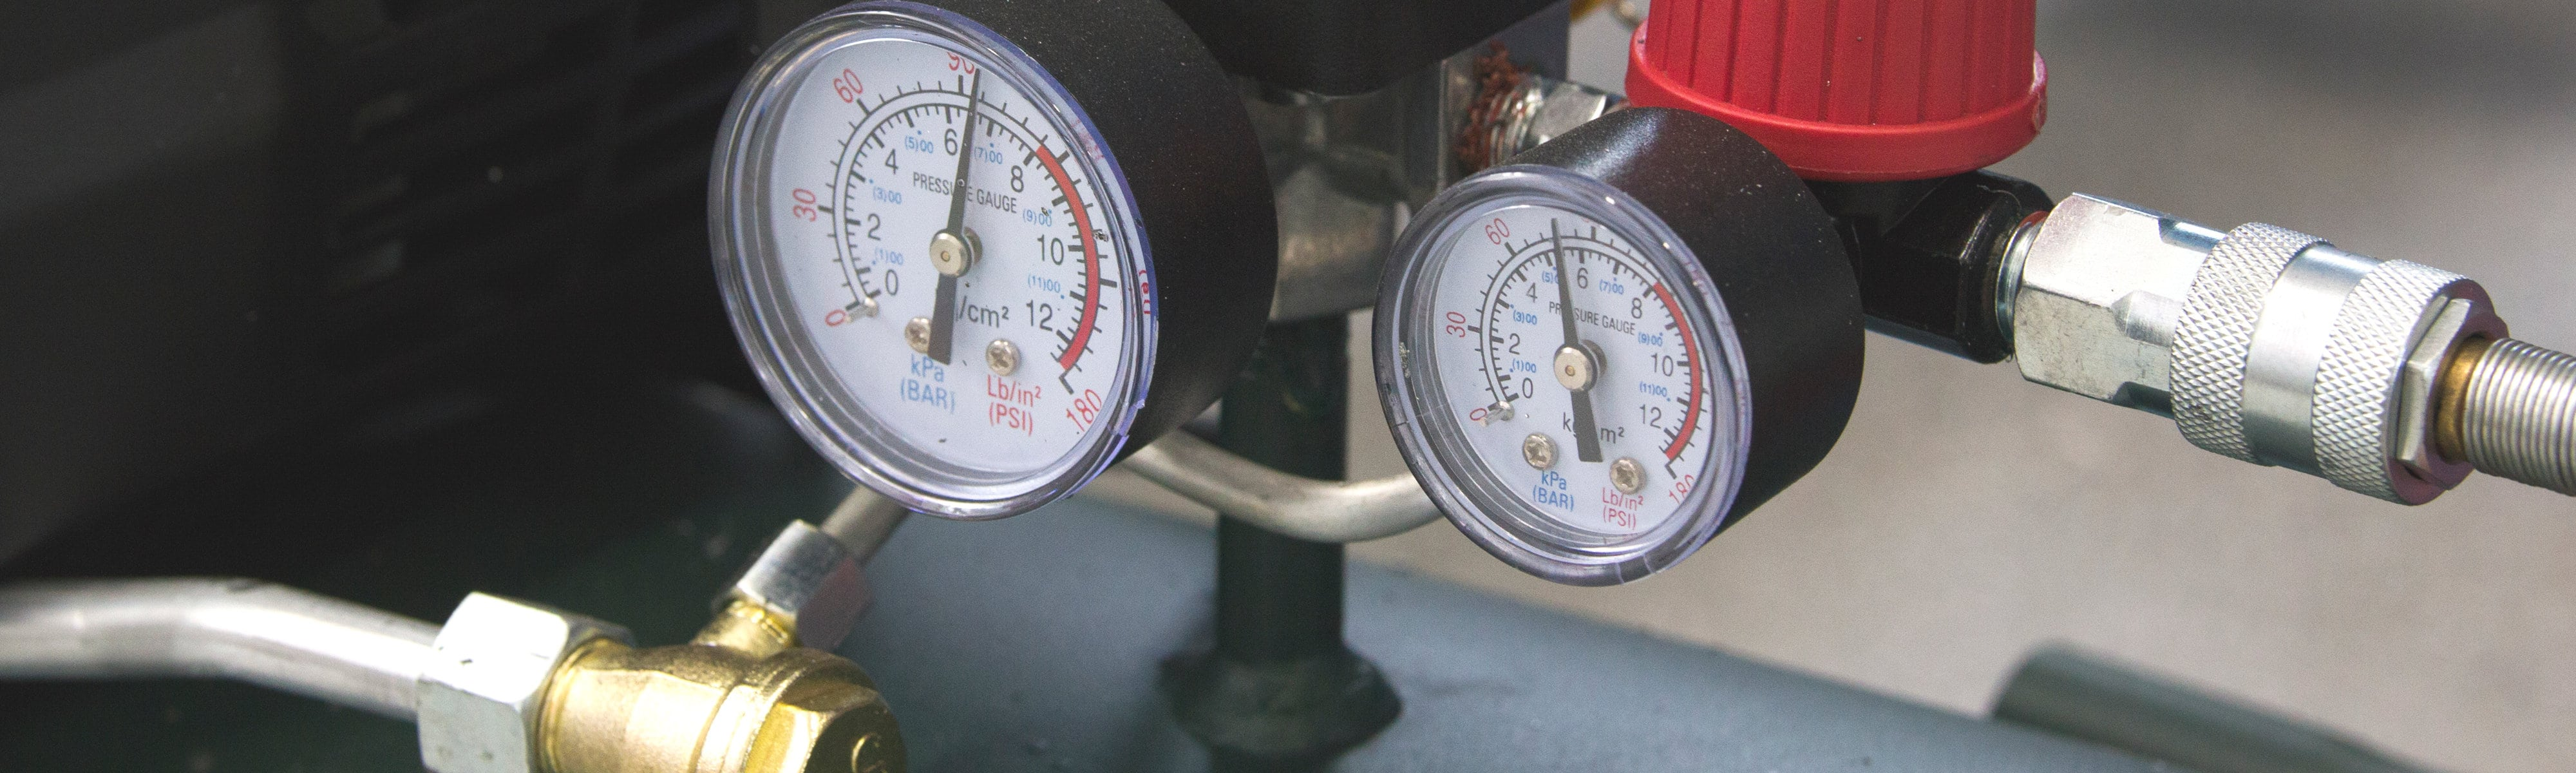 Various HVAC gauges.